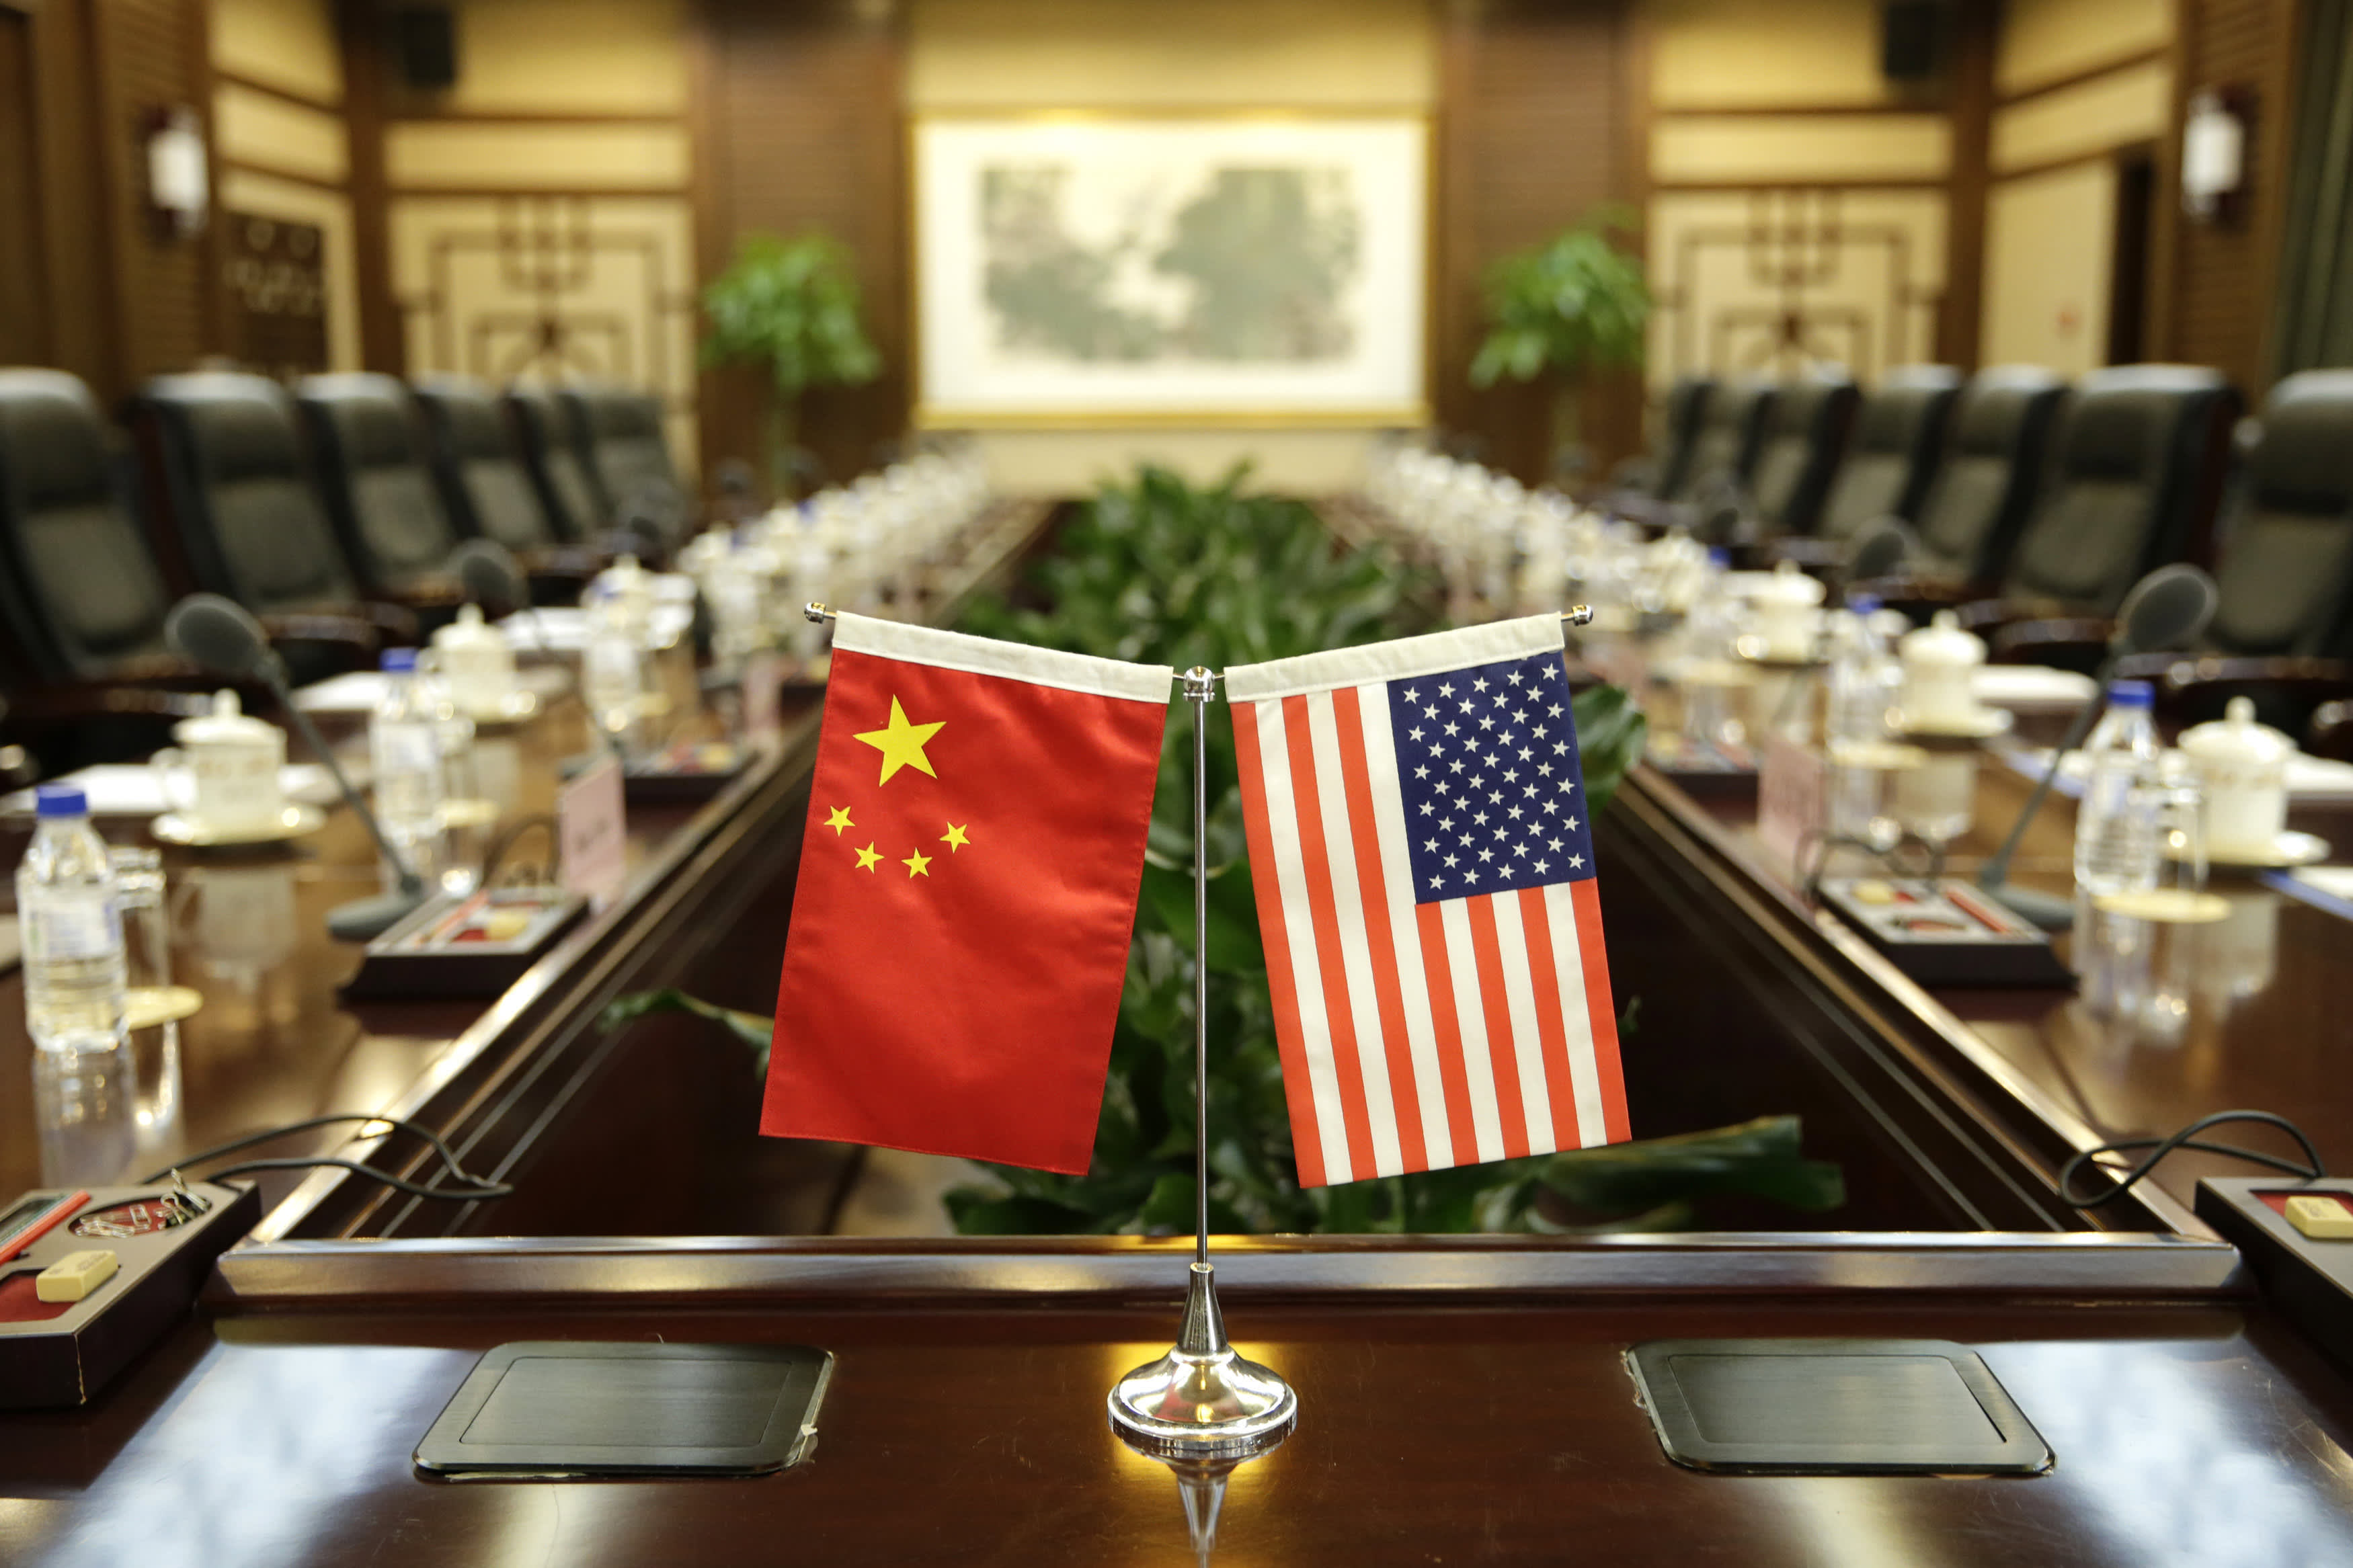 Flags of the US and China are placed ahead of a meeting between US Secretary of Agriculture Sonny Perdue and China's Agriculture Minister Han Changfu at the Ministry of Agriculture in Beijing on June 30, 2017.